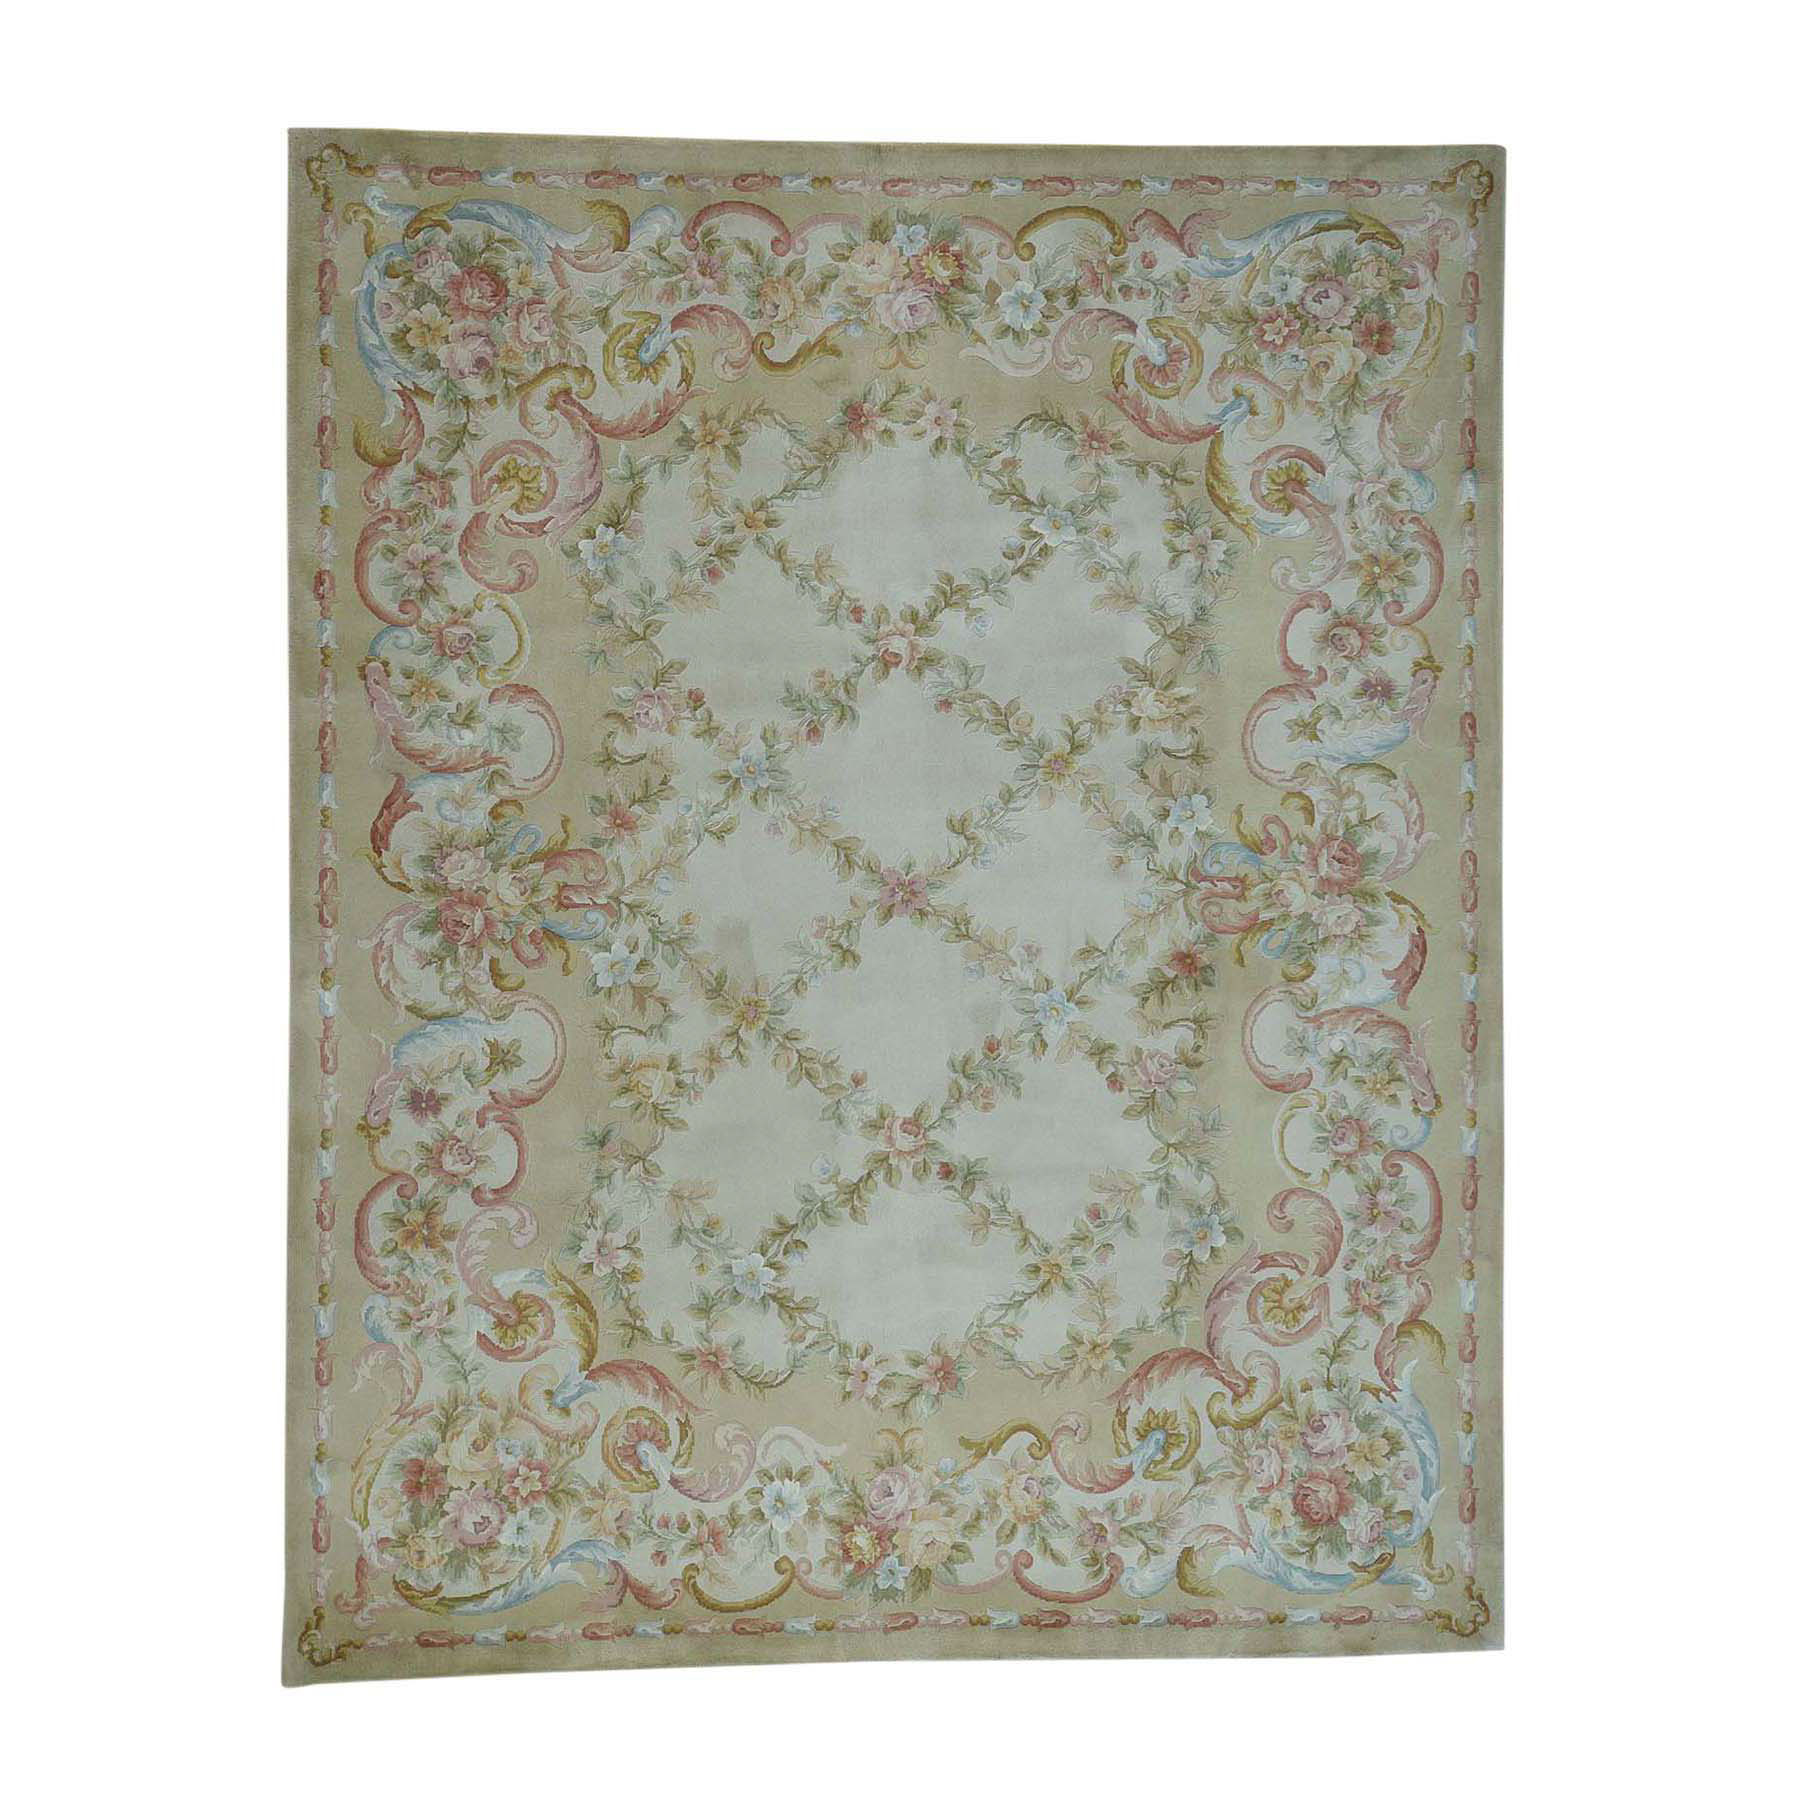 8'x10' Savonnerie Floral Trellis Design Thick And Plush Hand-Knotted Oriental Rug